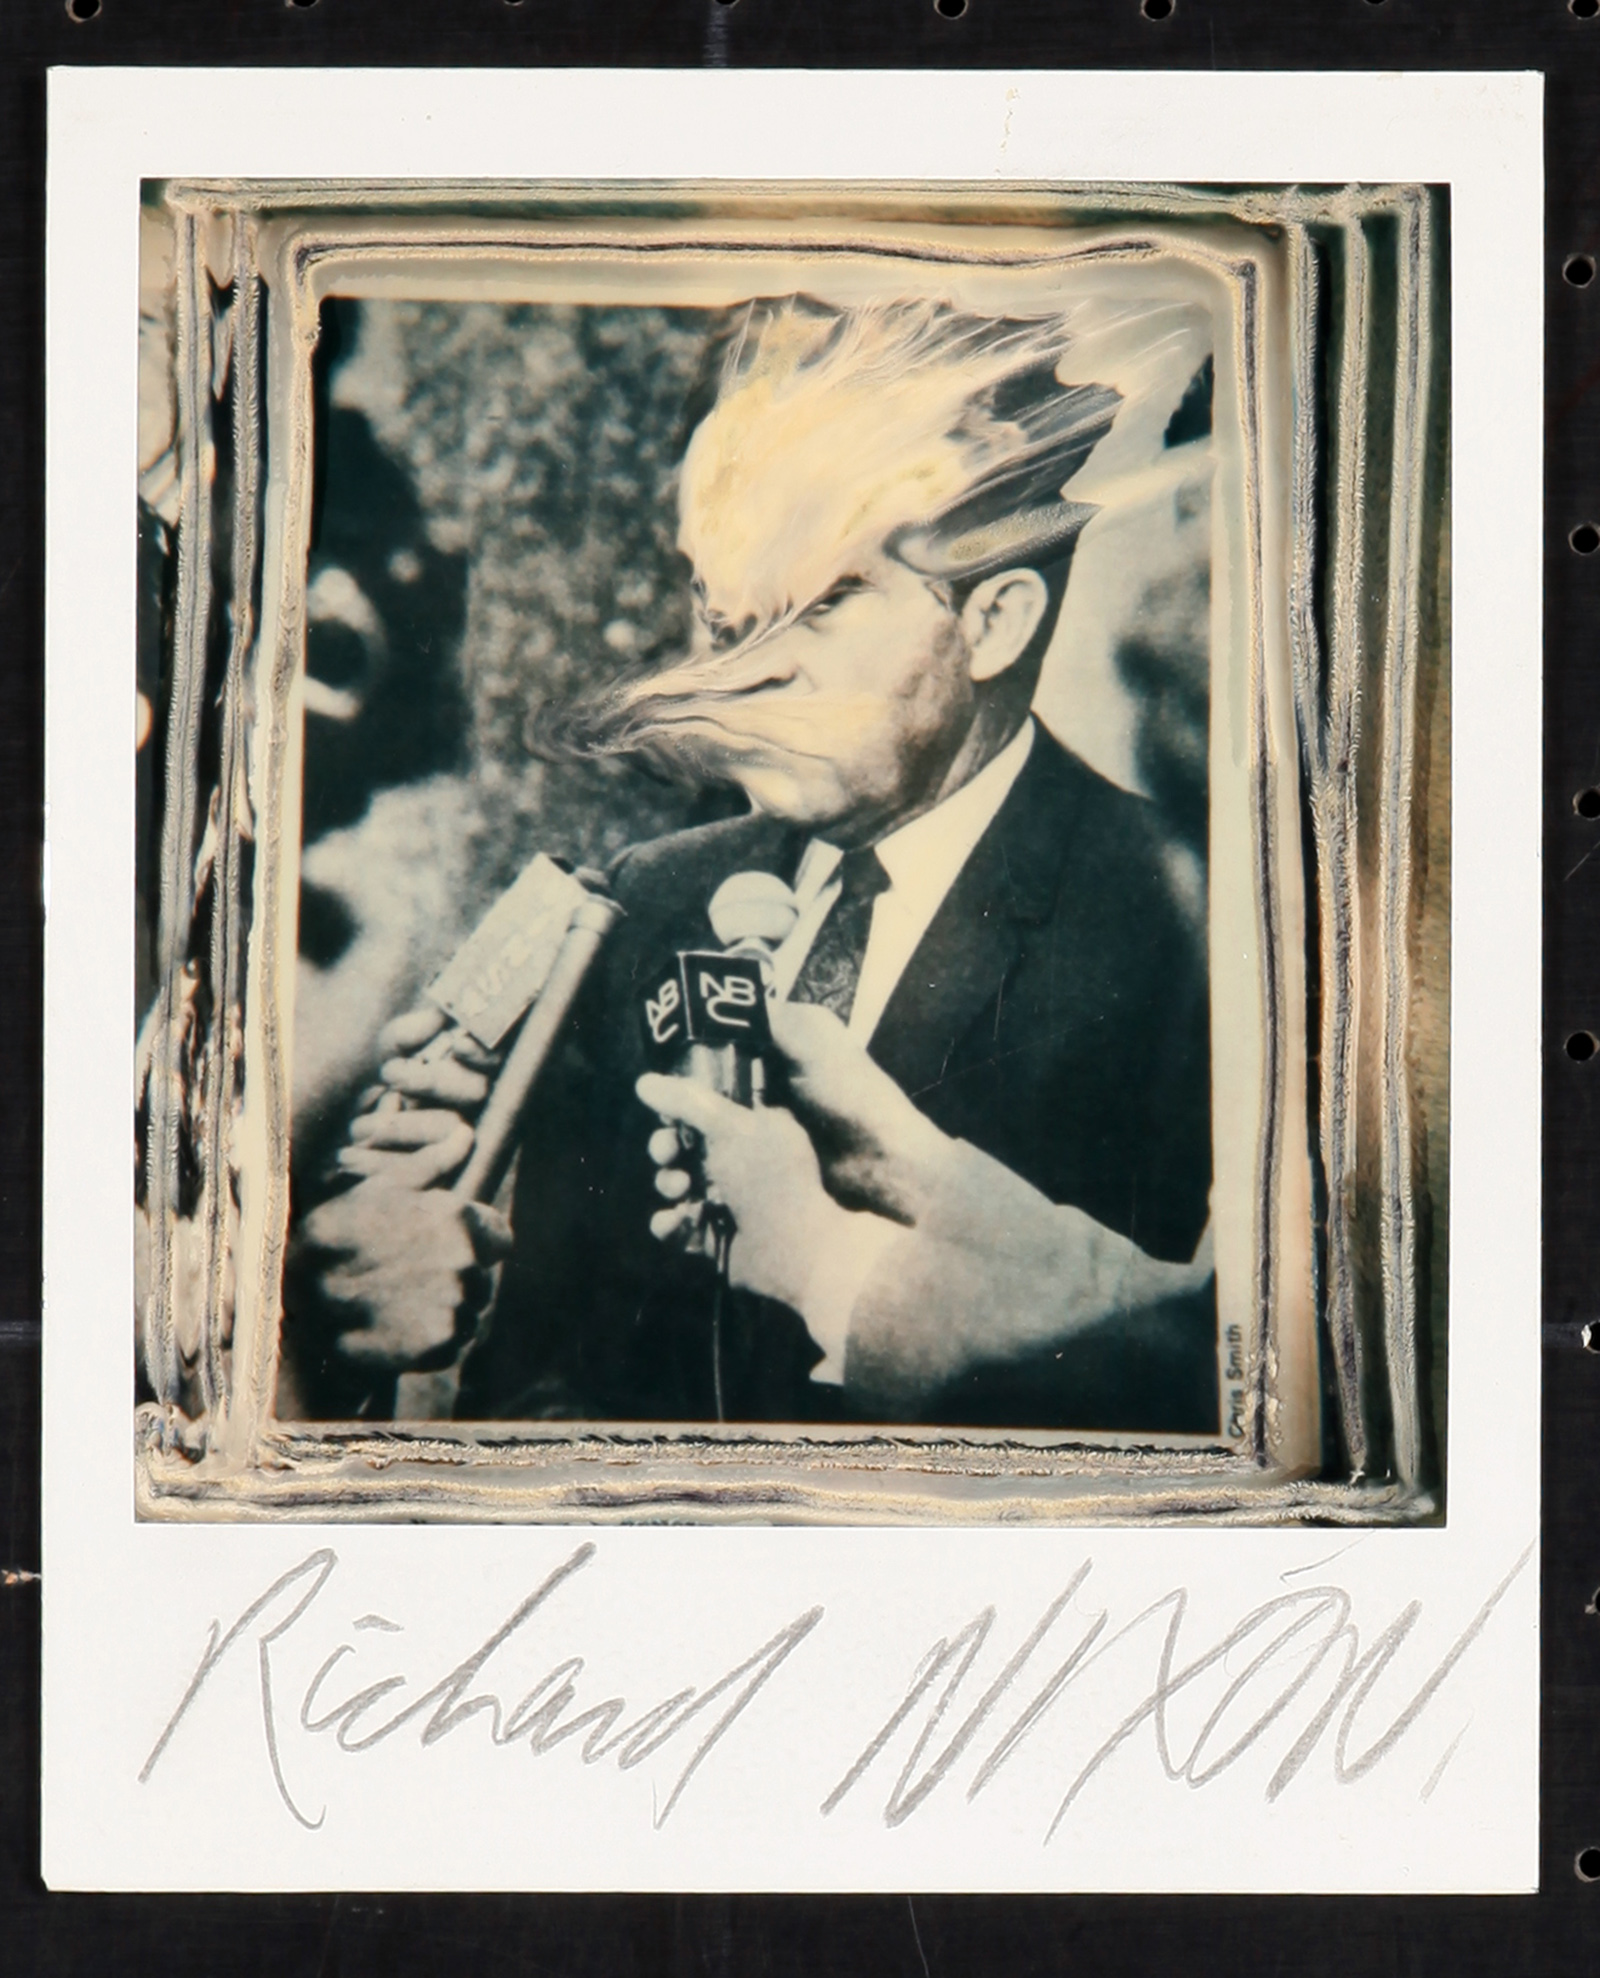 A portrait of Richard Nixon using the photographic technique, Paranoids using a polaroid photo by Ralph Steadman